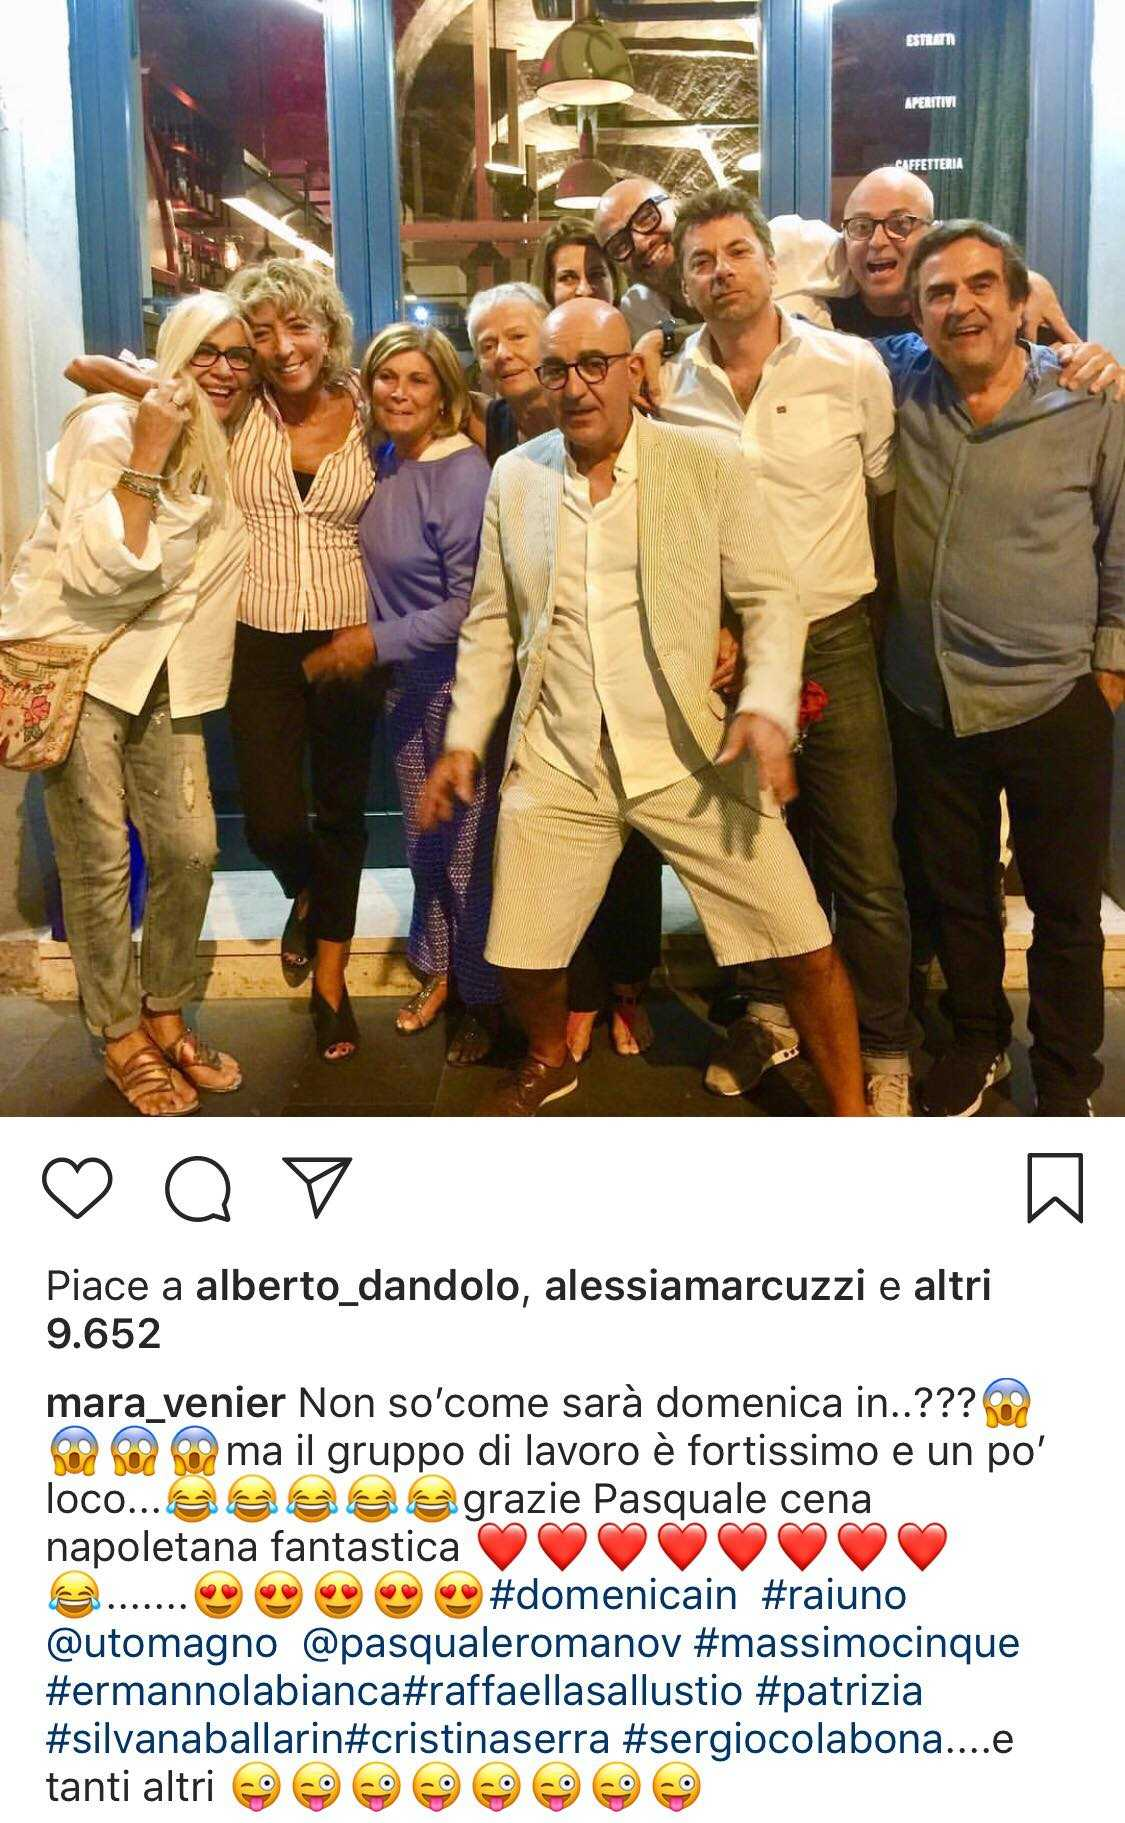 mara venier instagram insulto follower